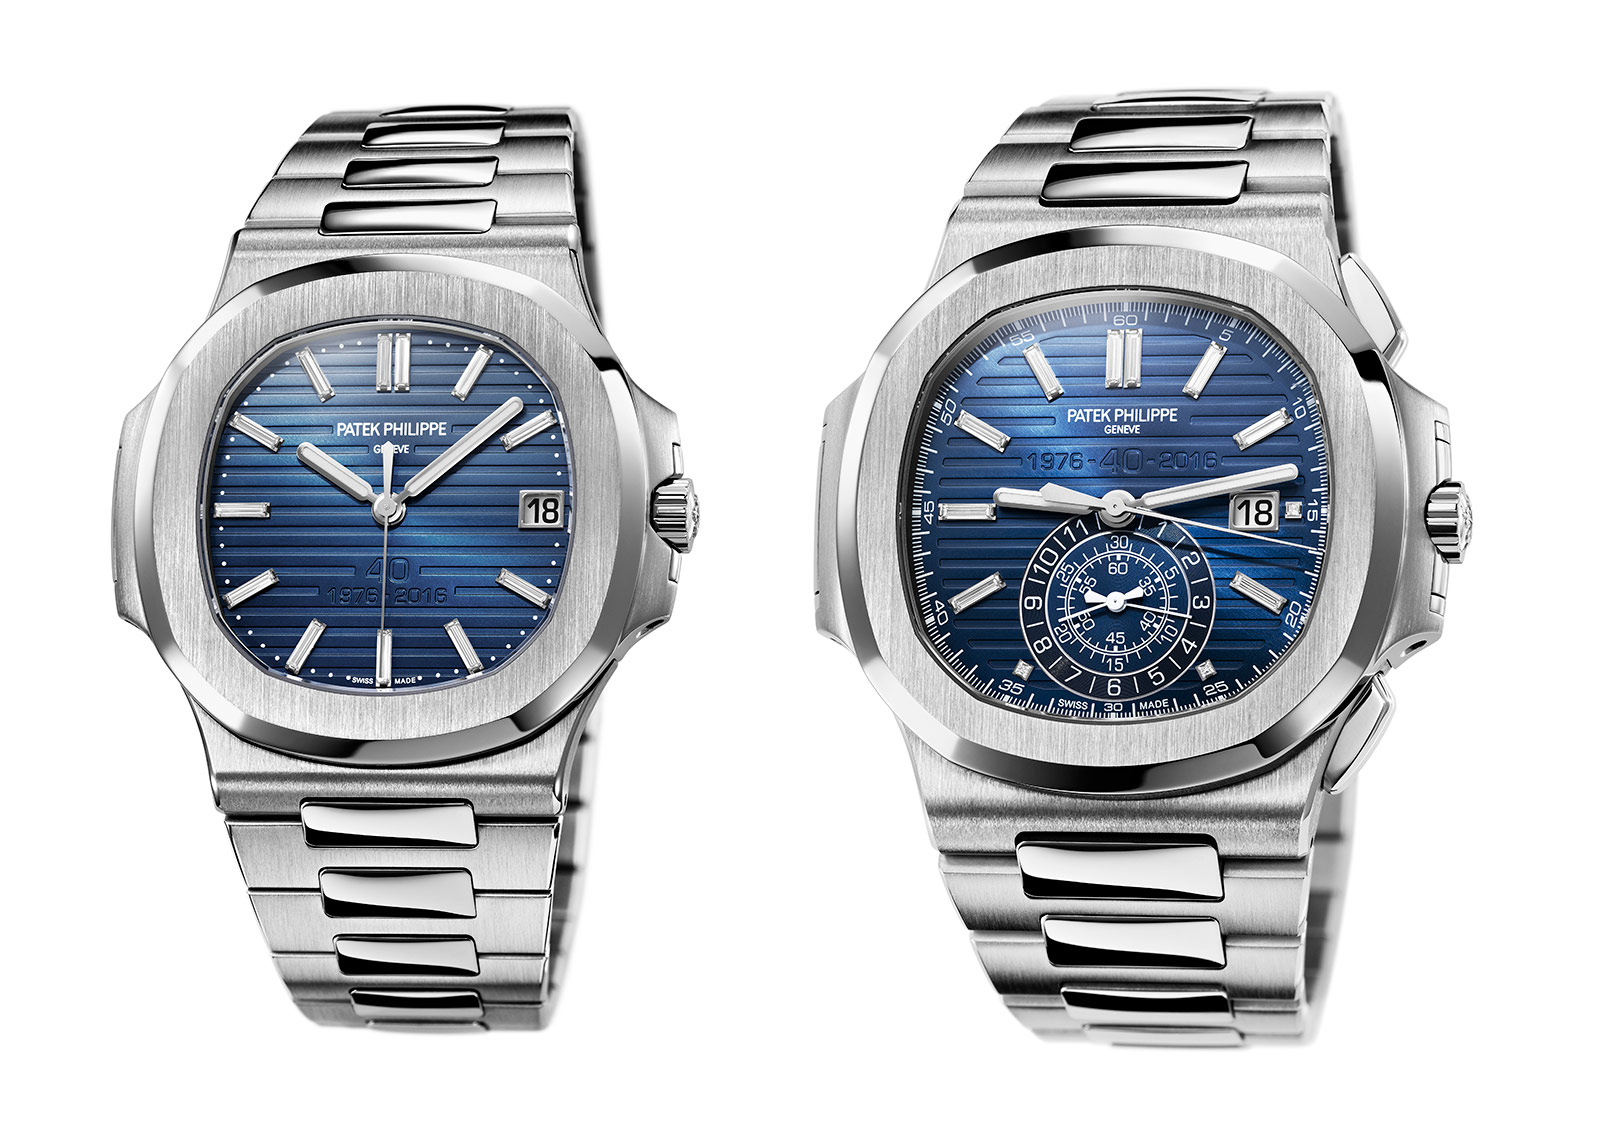 bbe64816383 Patek Philippe Nautilus Replica Refs. 5711 1P and 5976 1G